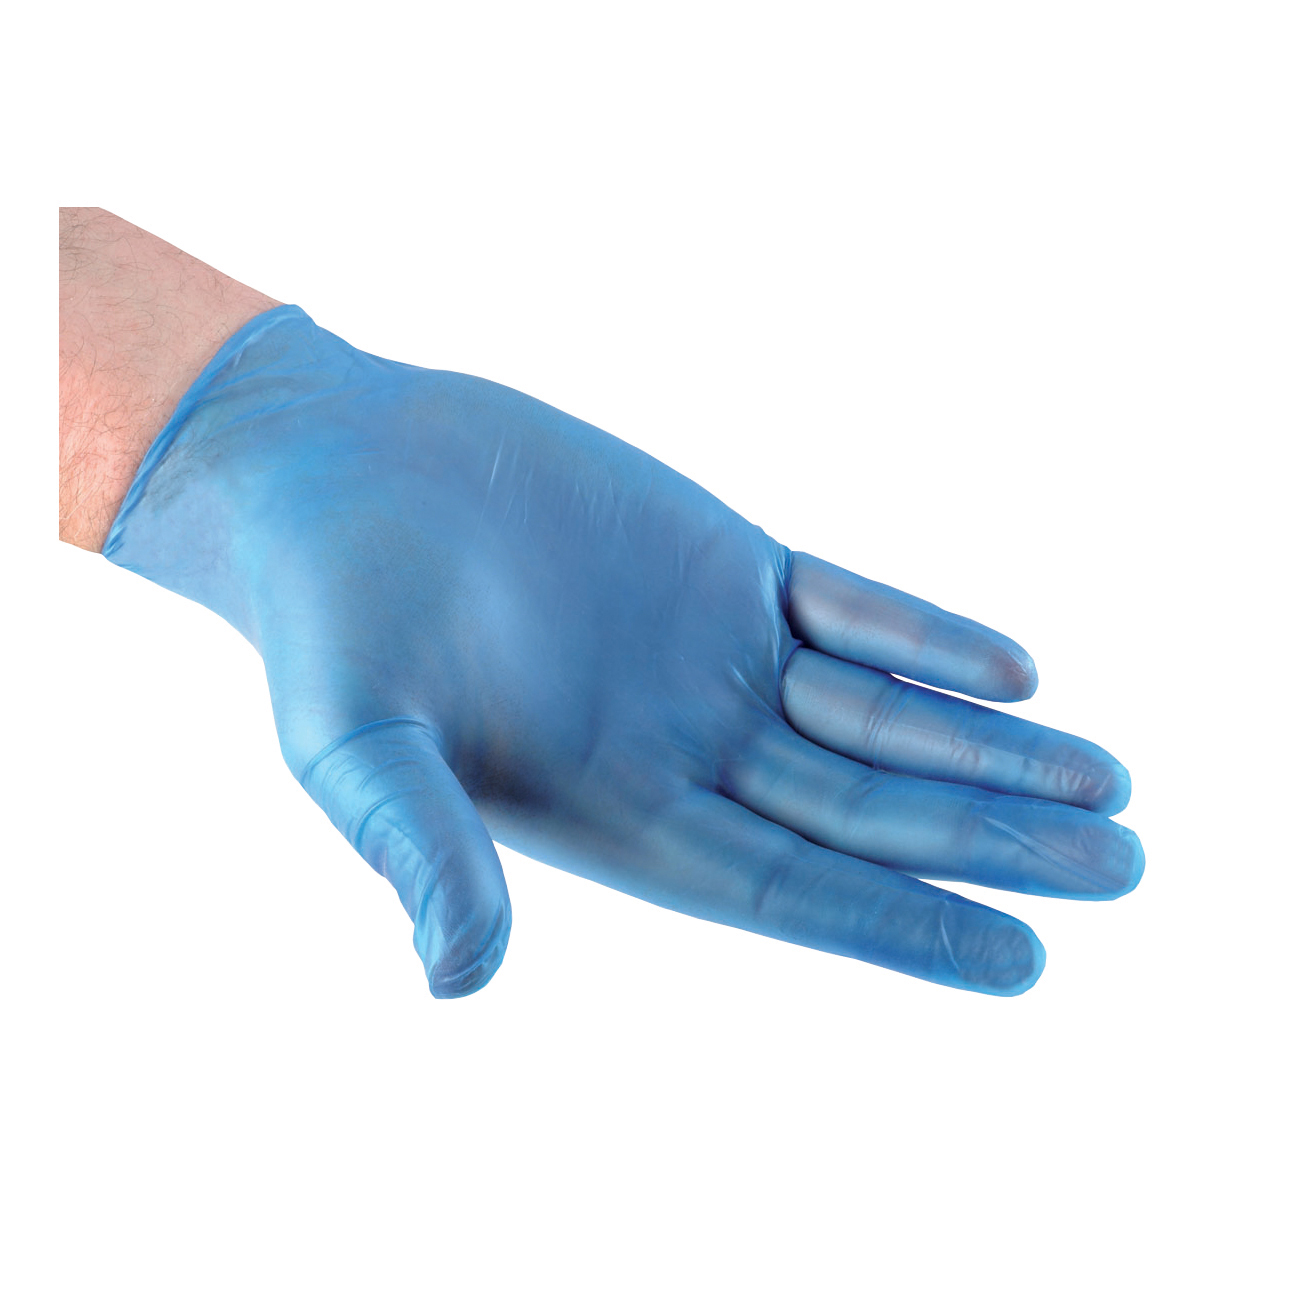 Image for Disposable Gloves Vinyl Powder Free Medium Blue [Pack 100]